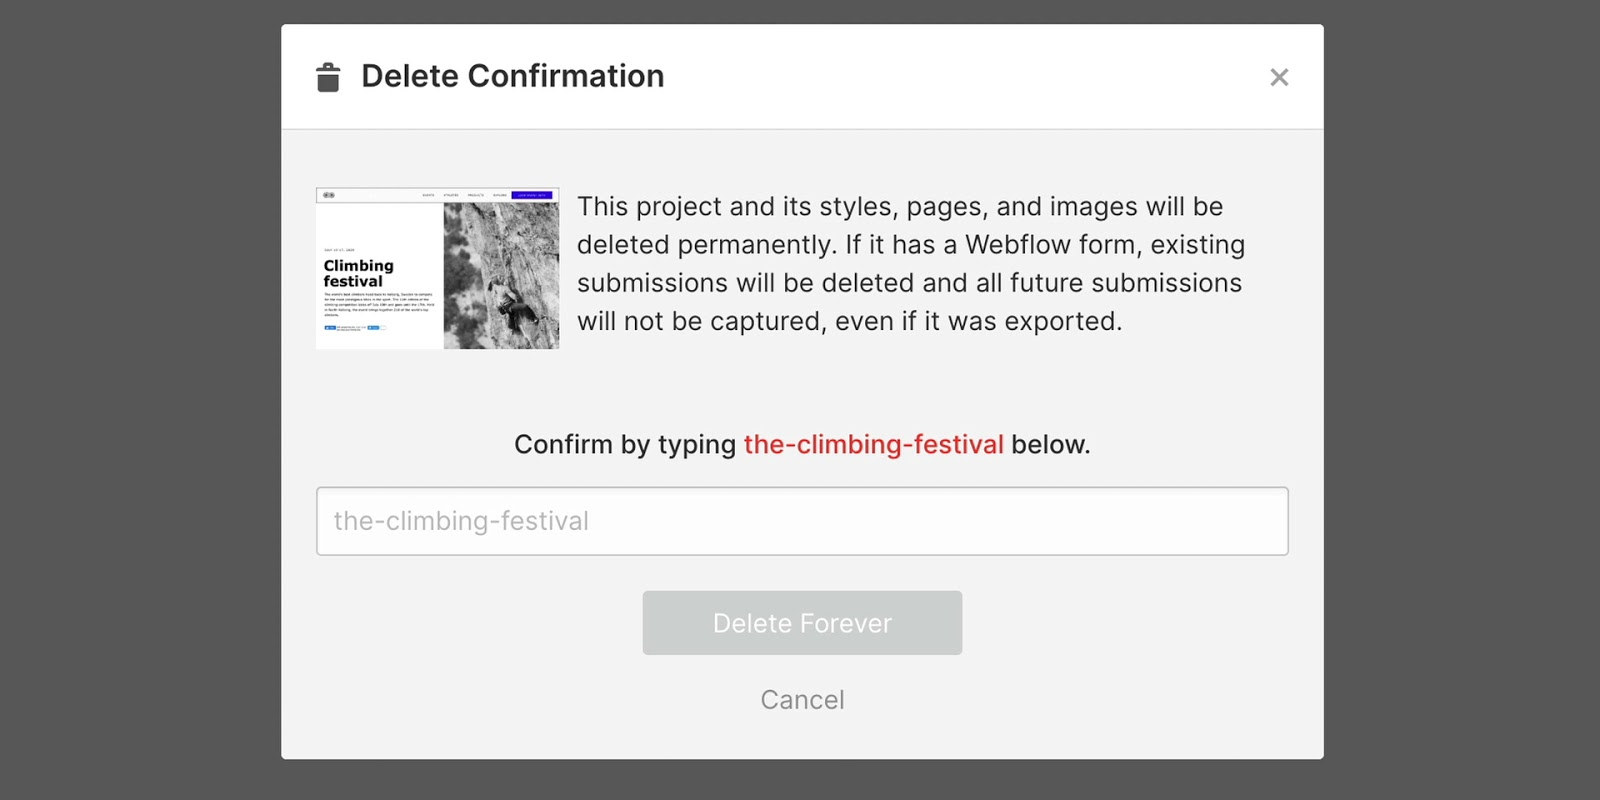 Type the project name to confirm deletion.